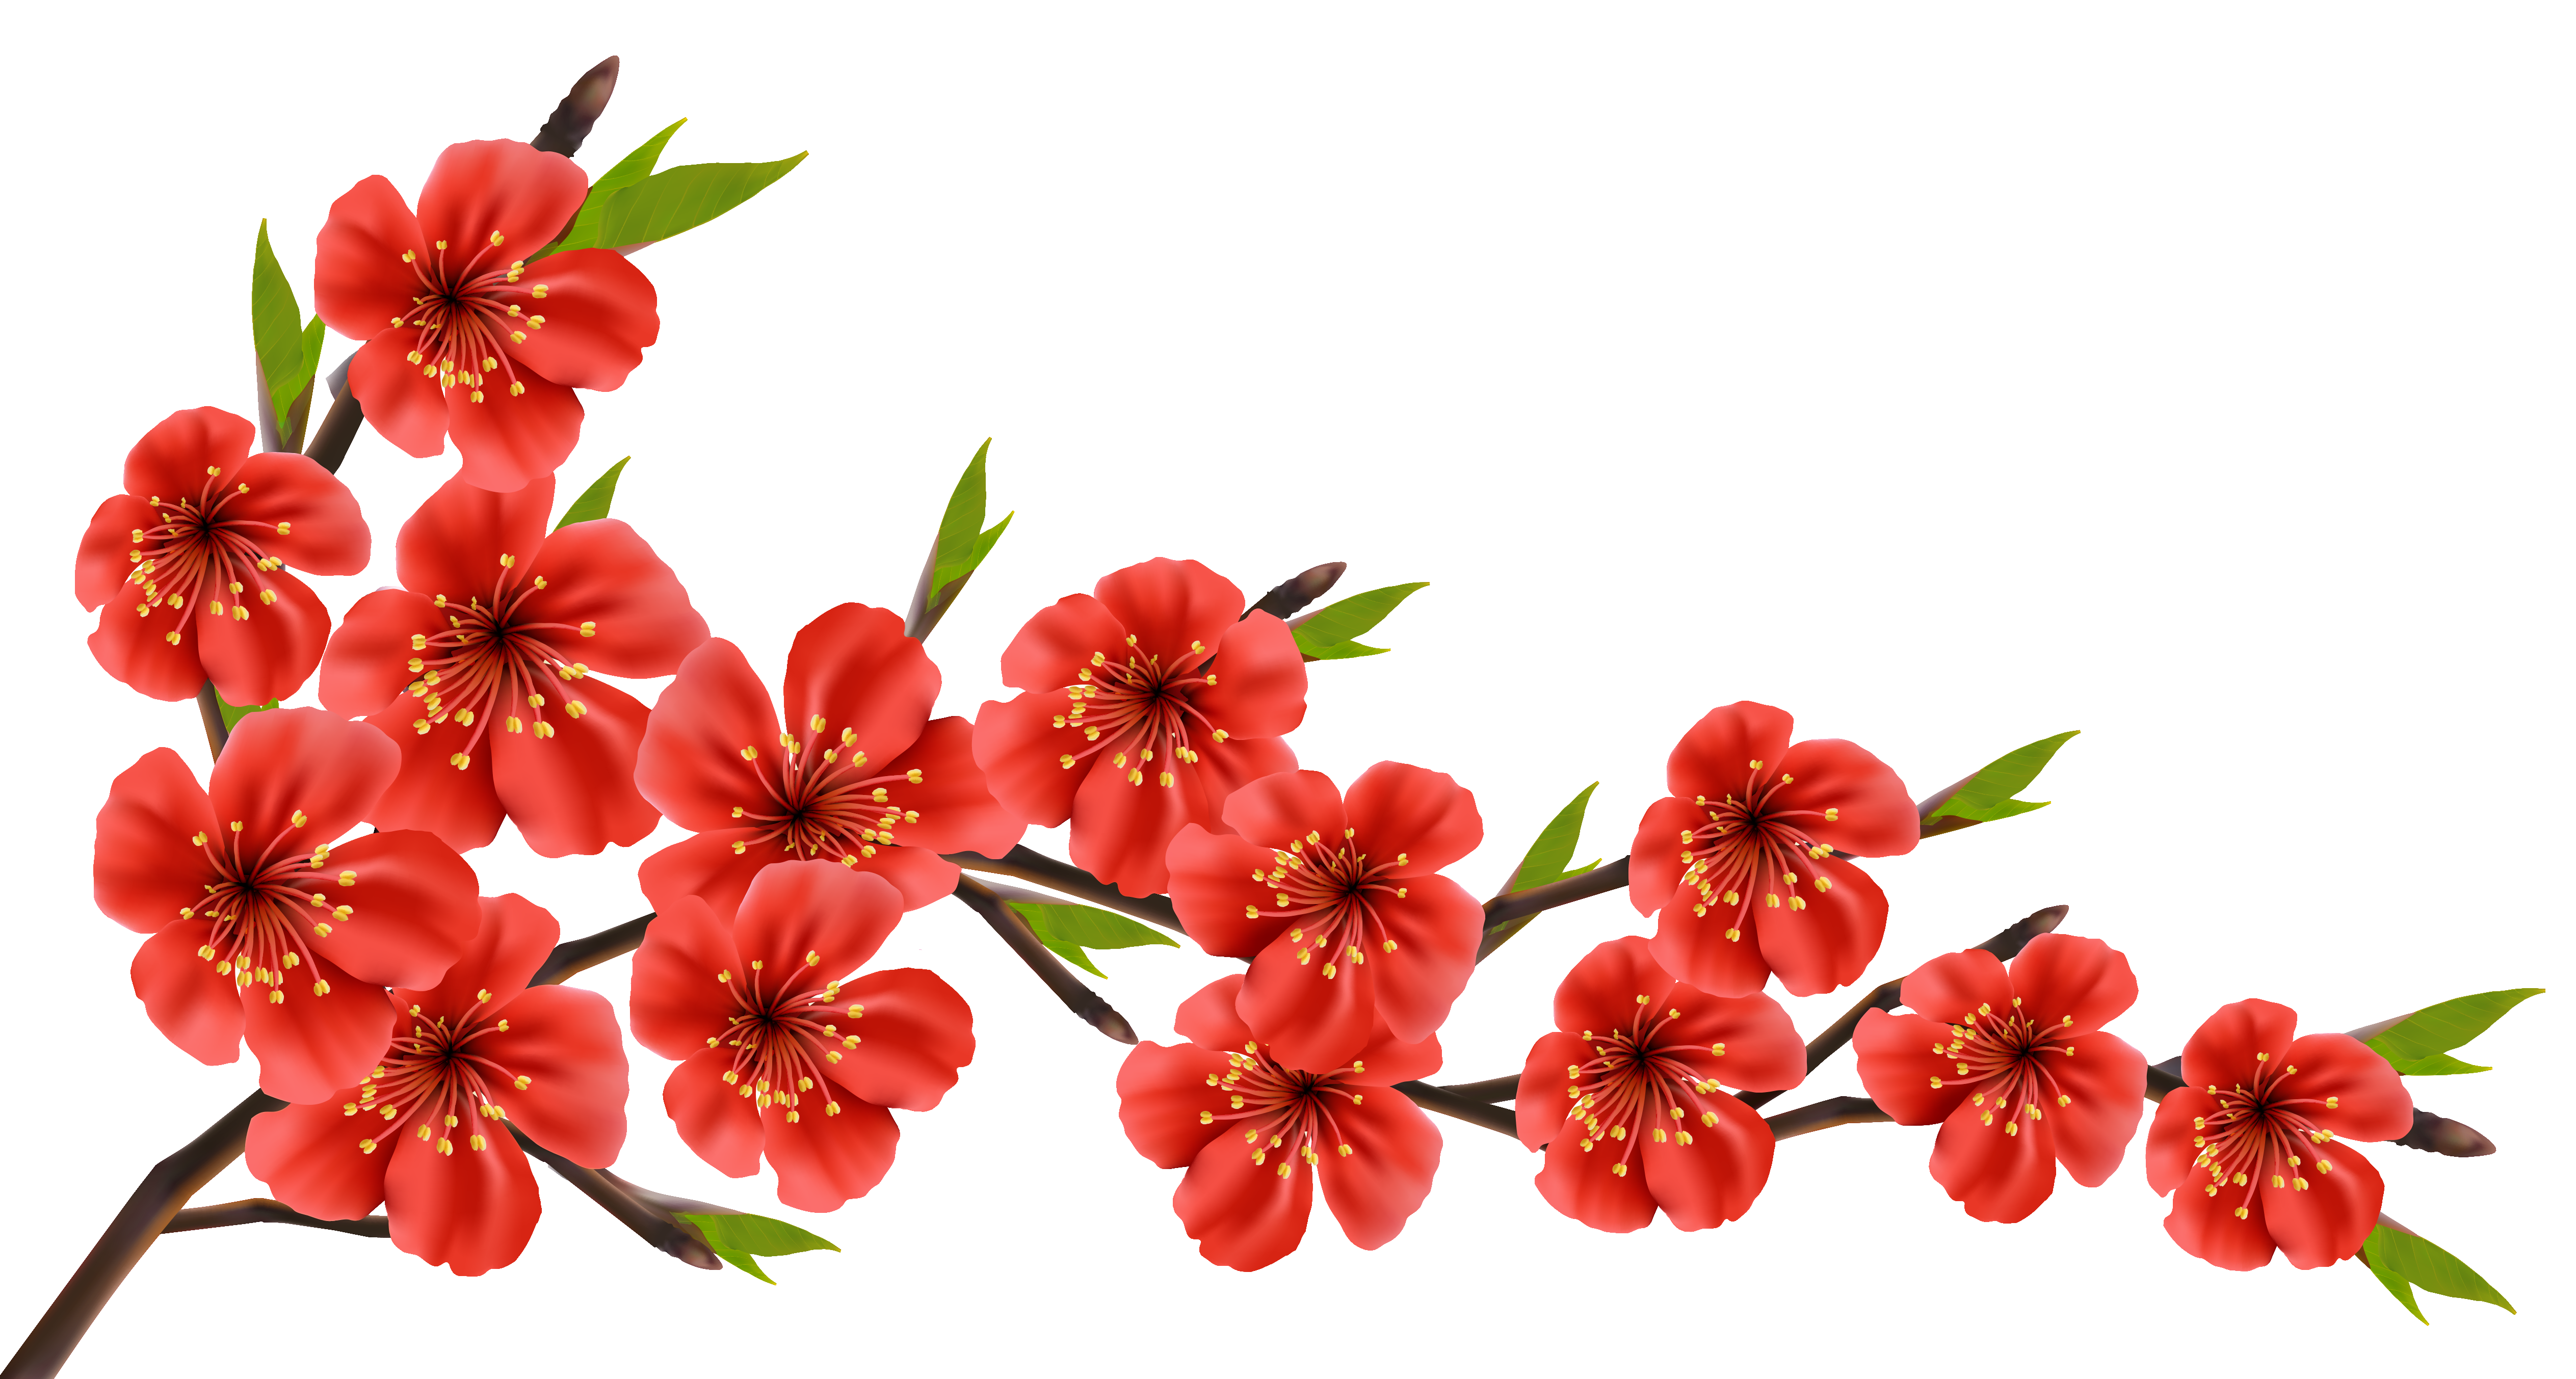 Red Spring Branch PNG Clipart Image   Clip art   Pinterest ...